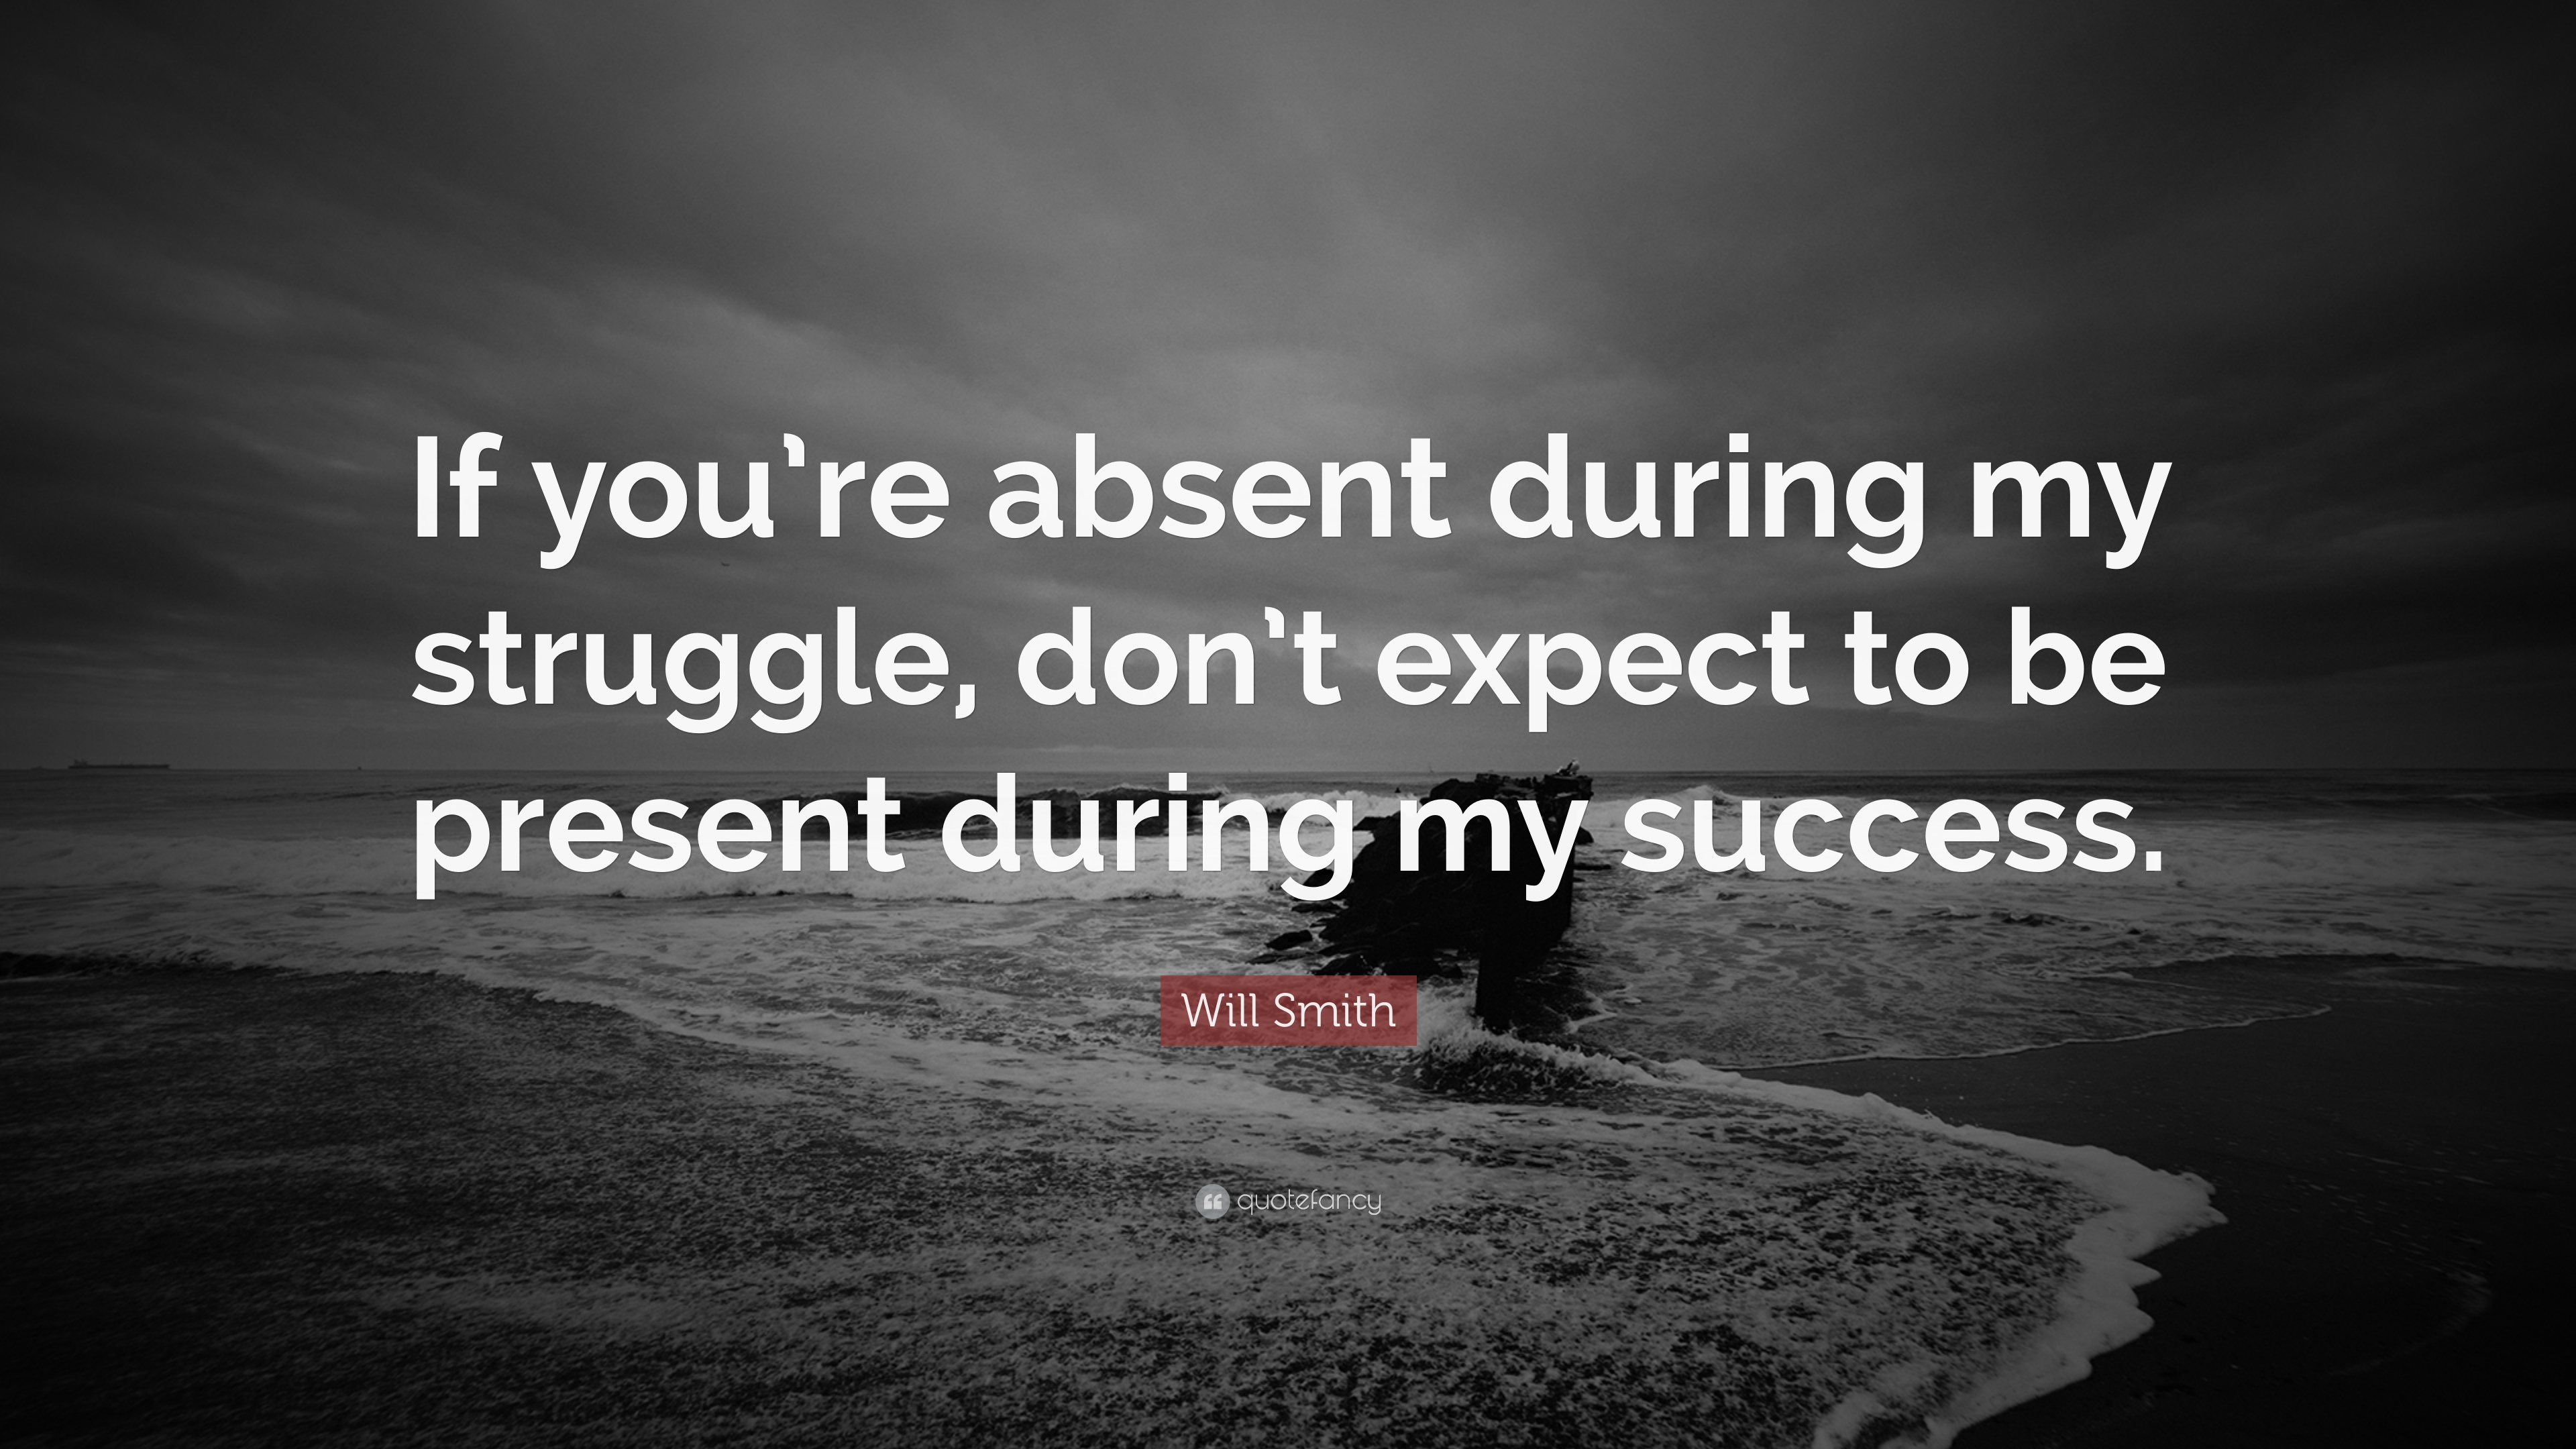 Napoleon Hill Quotes Wallpaper Will Smith Quote If You Re Absent During My Struggle